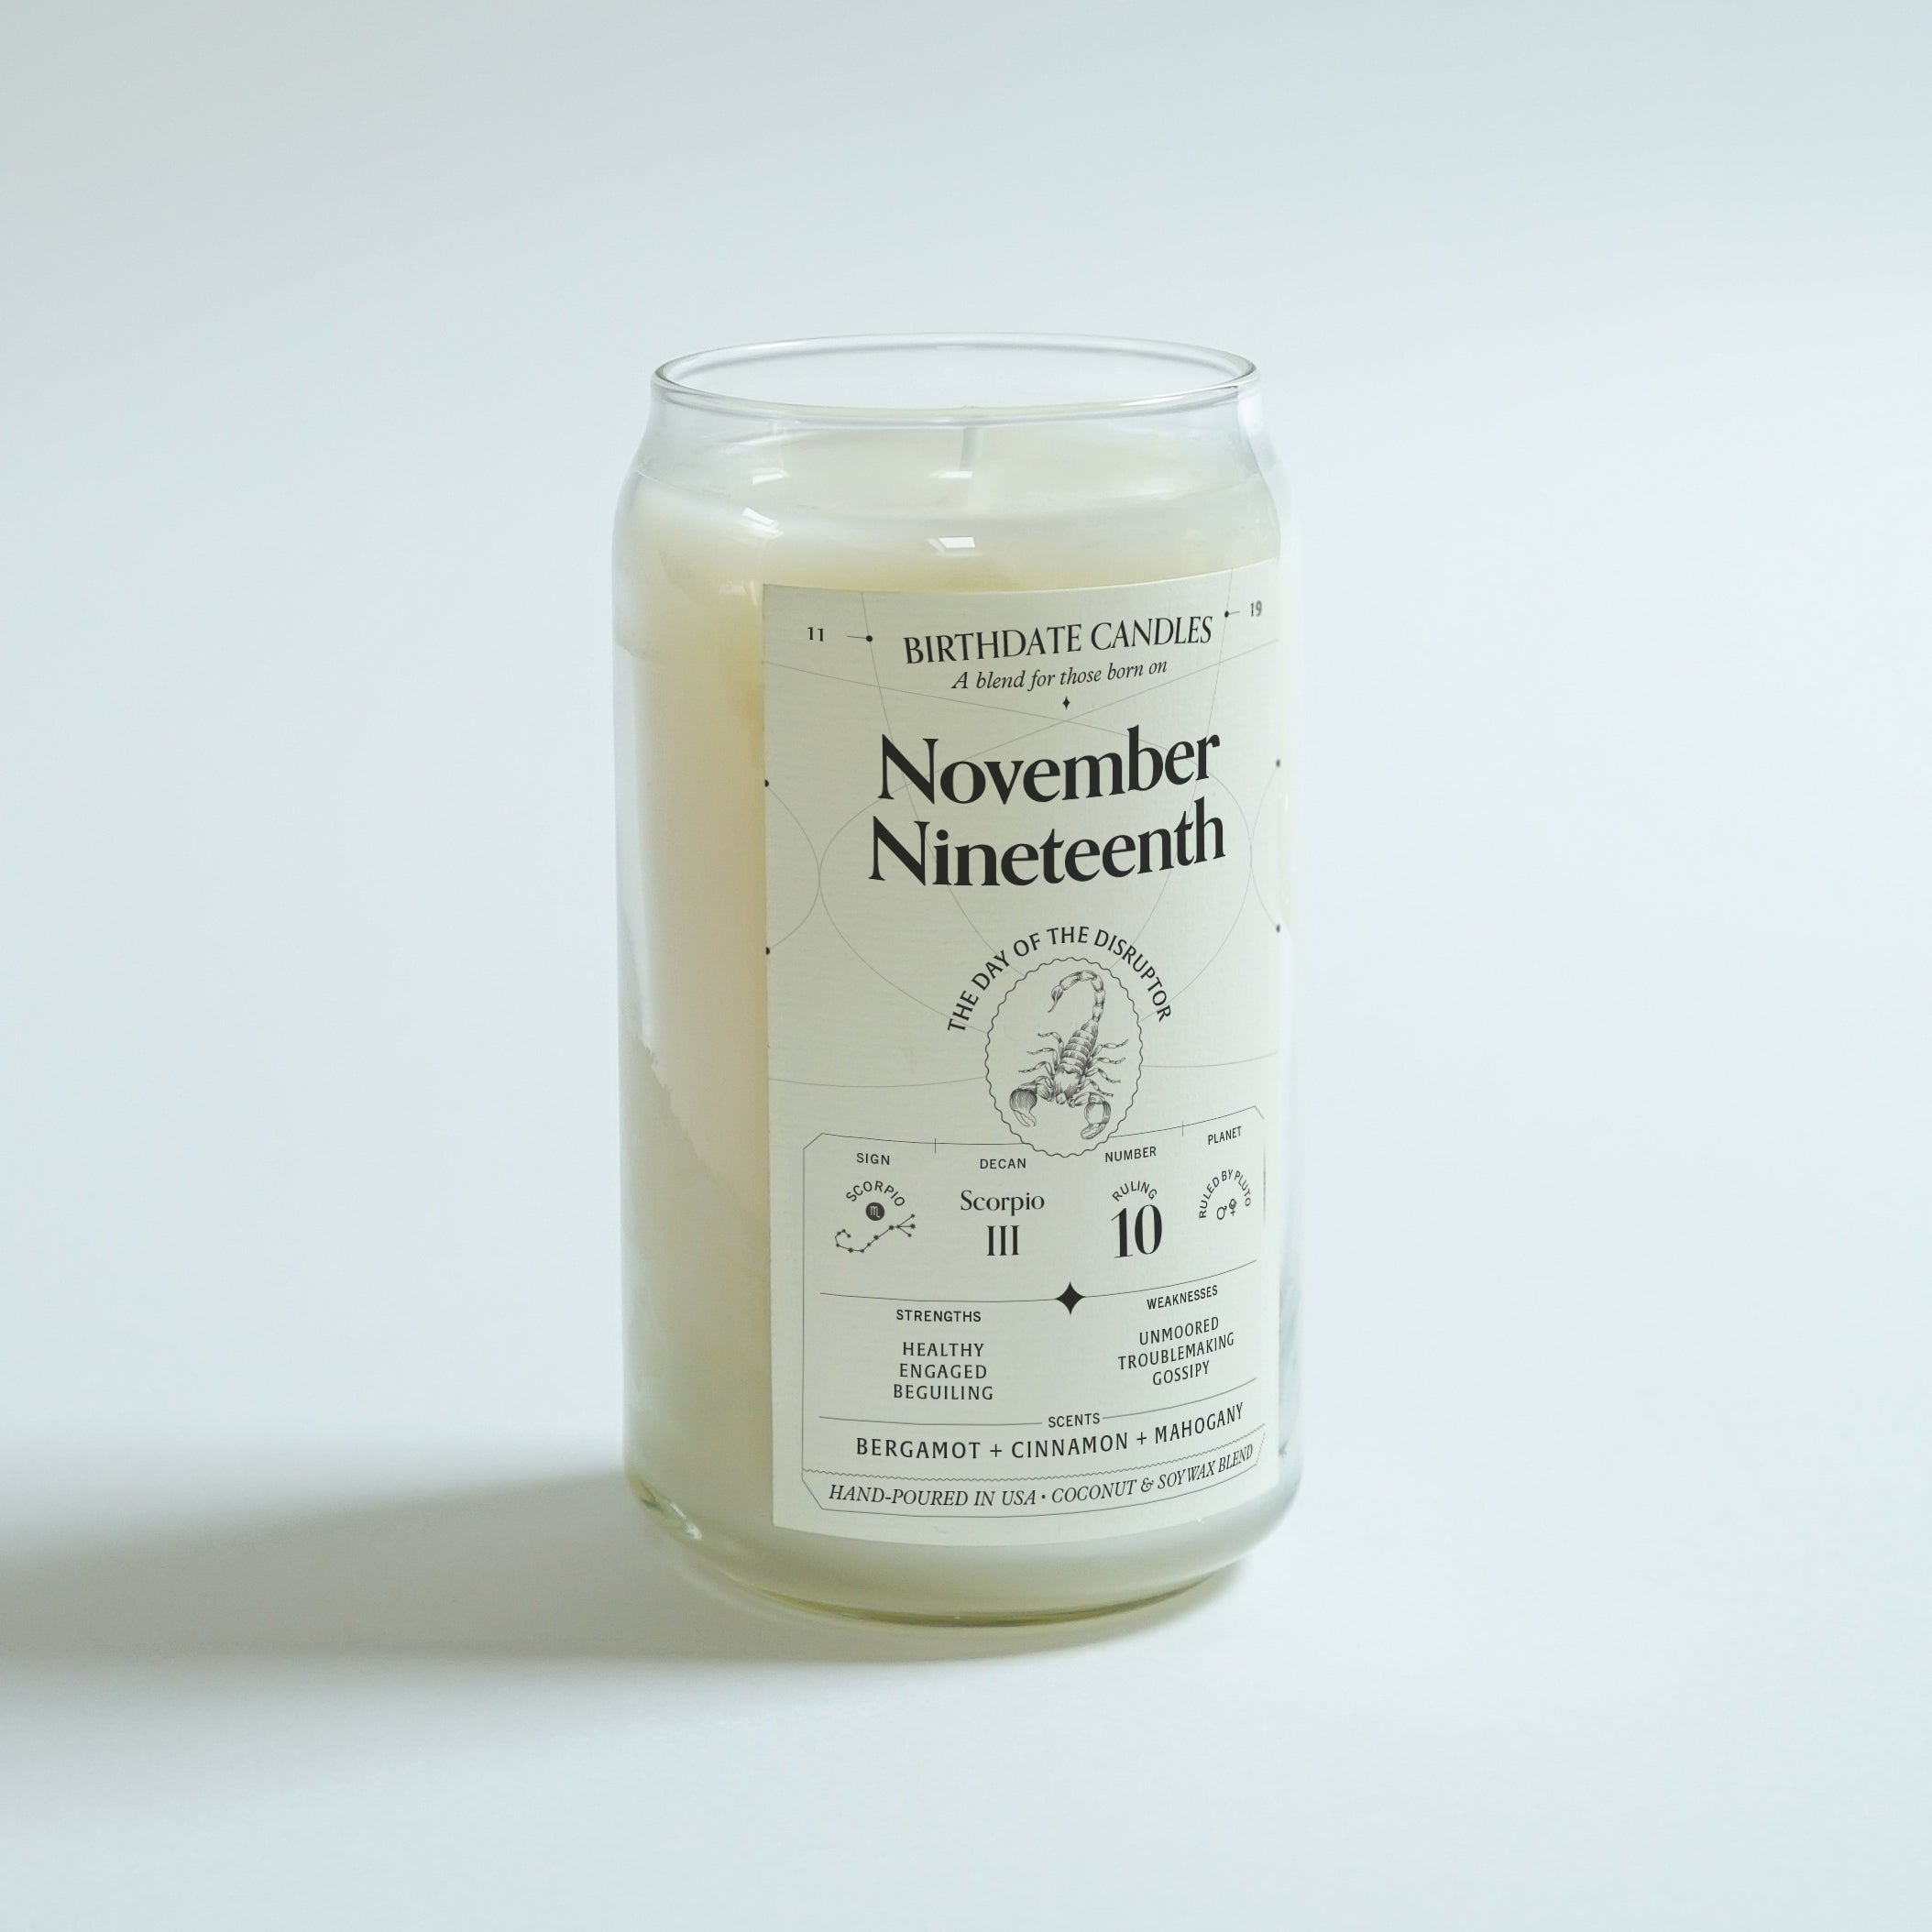 The November Nineteenth Candle